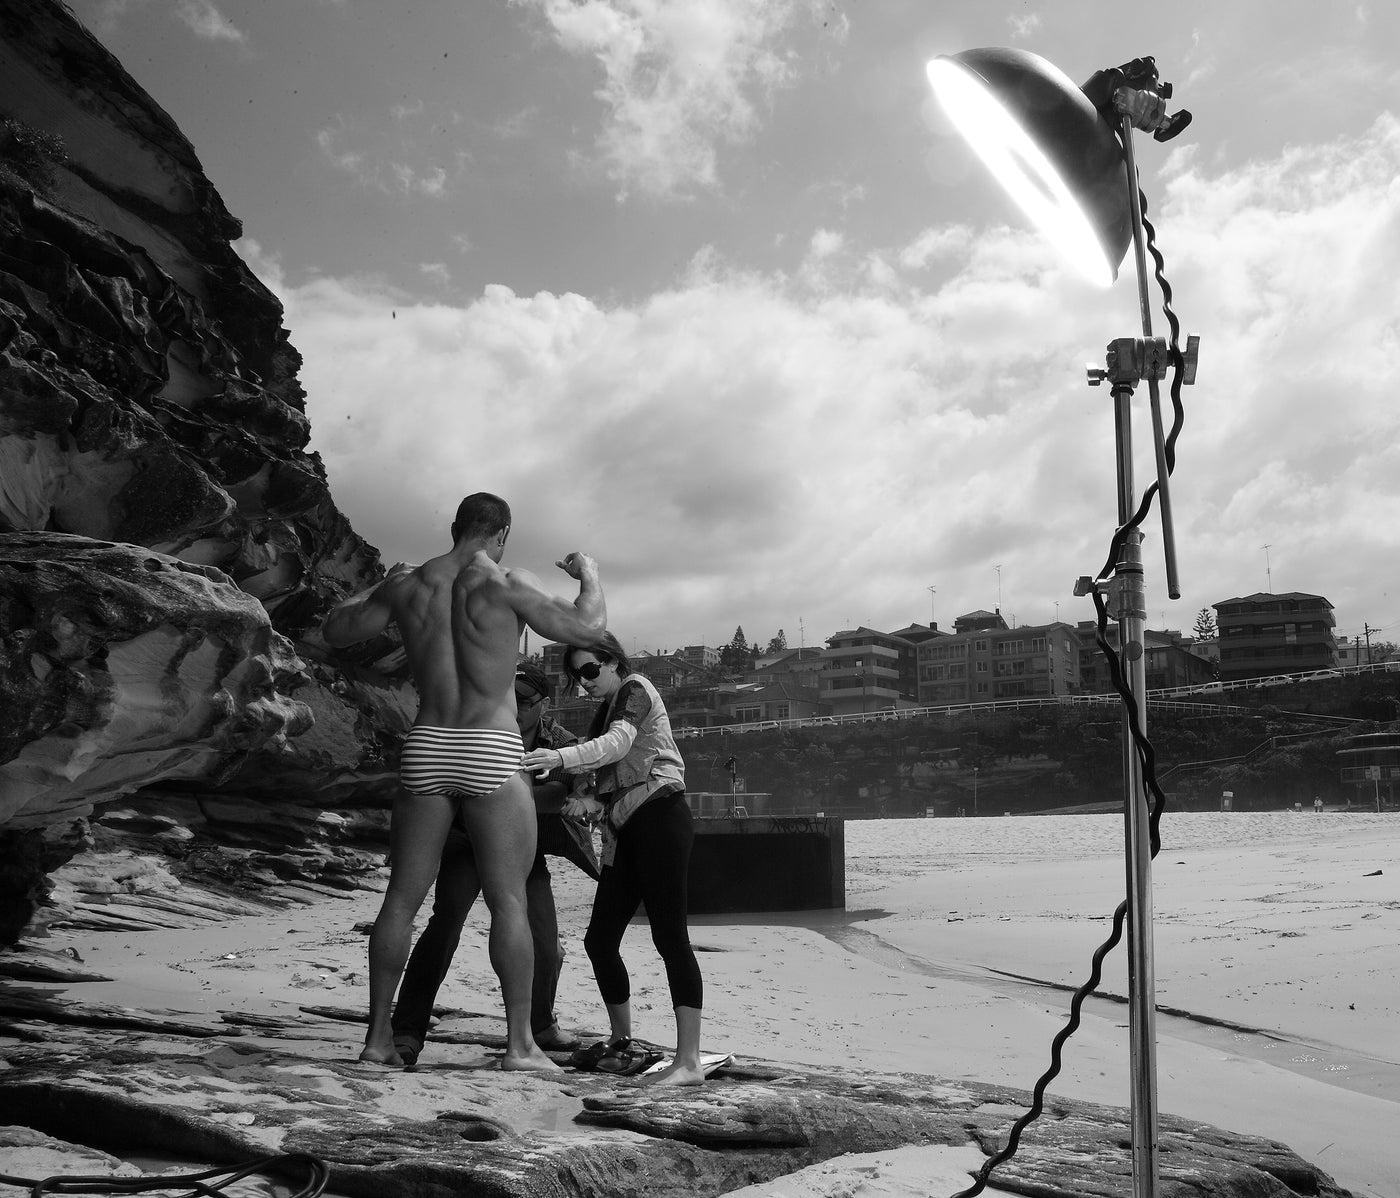 Cocksox behind the scenes image from swimwear photoshoot at Tamarama Beach in Sydney